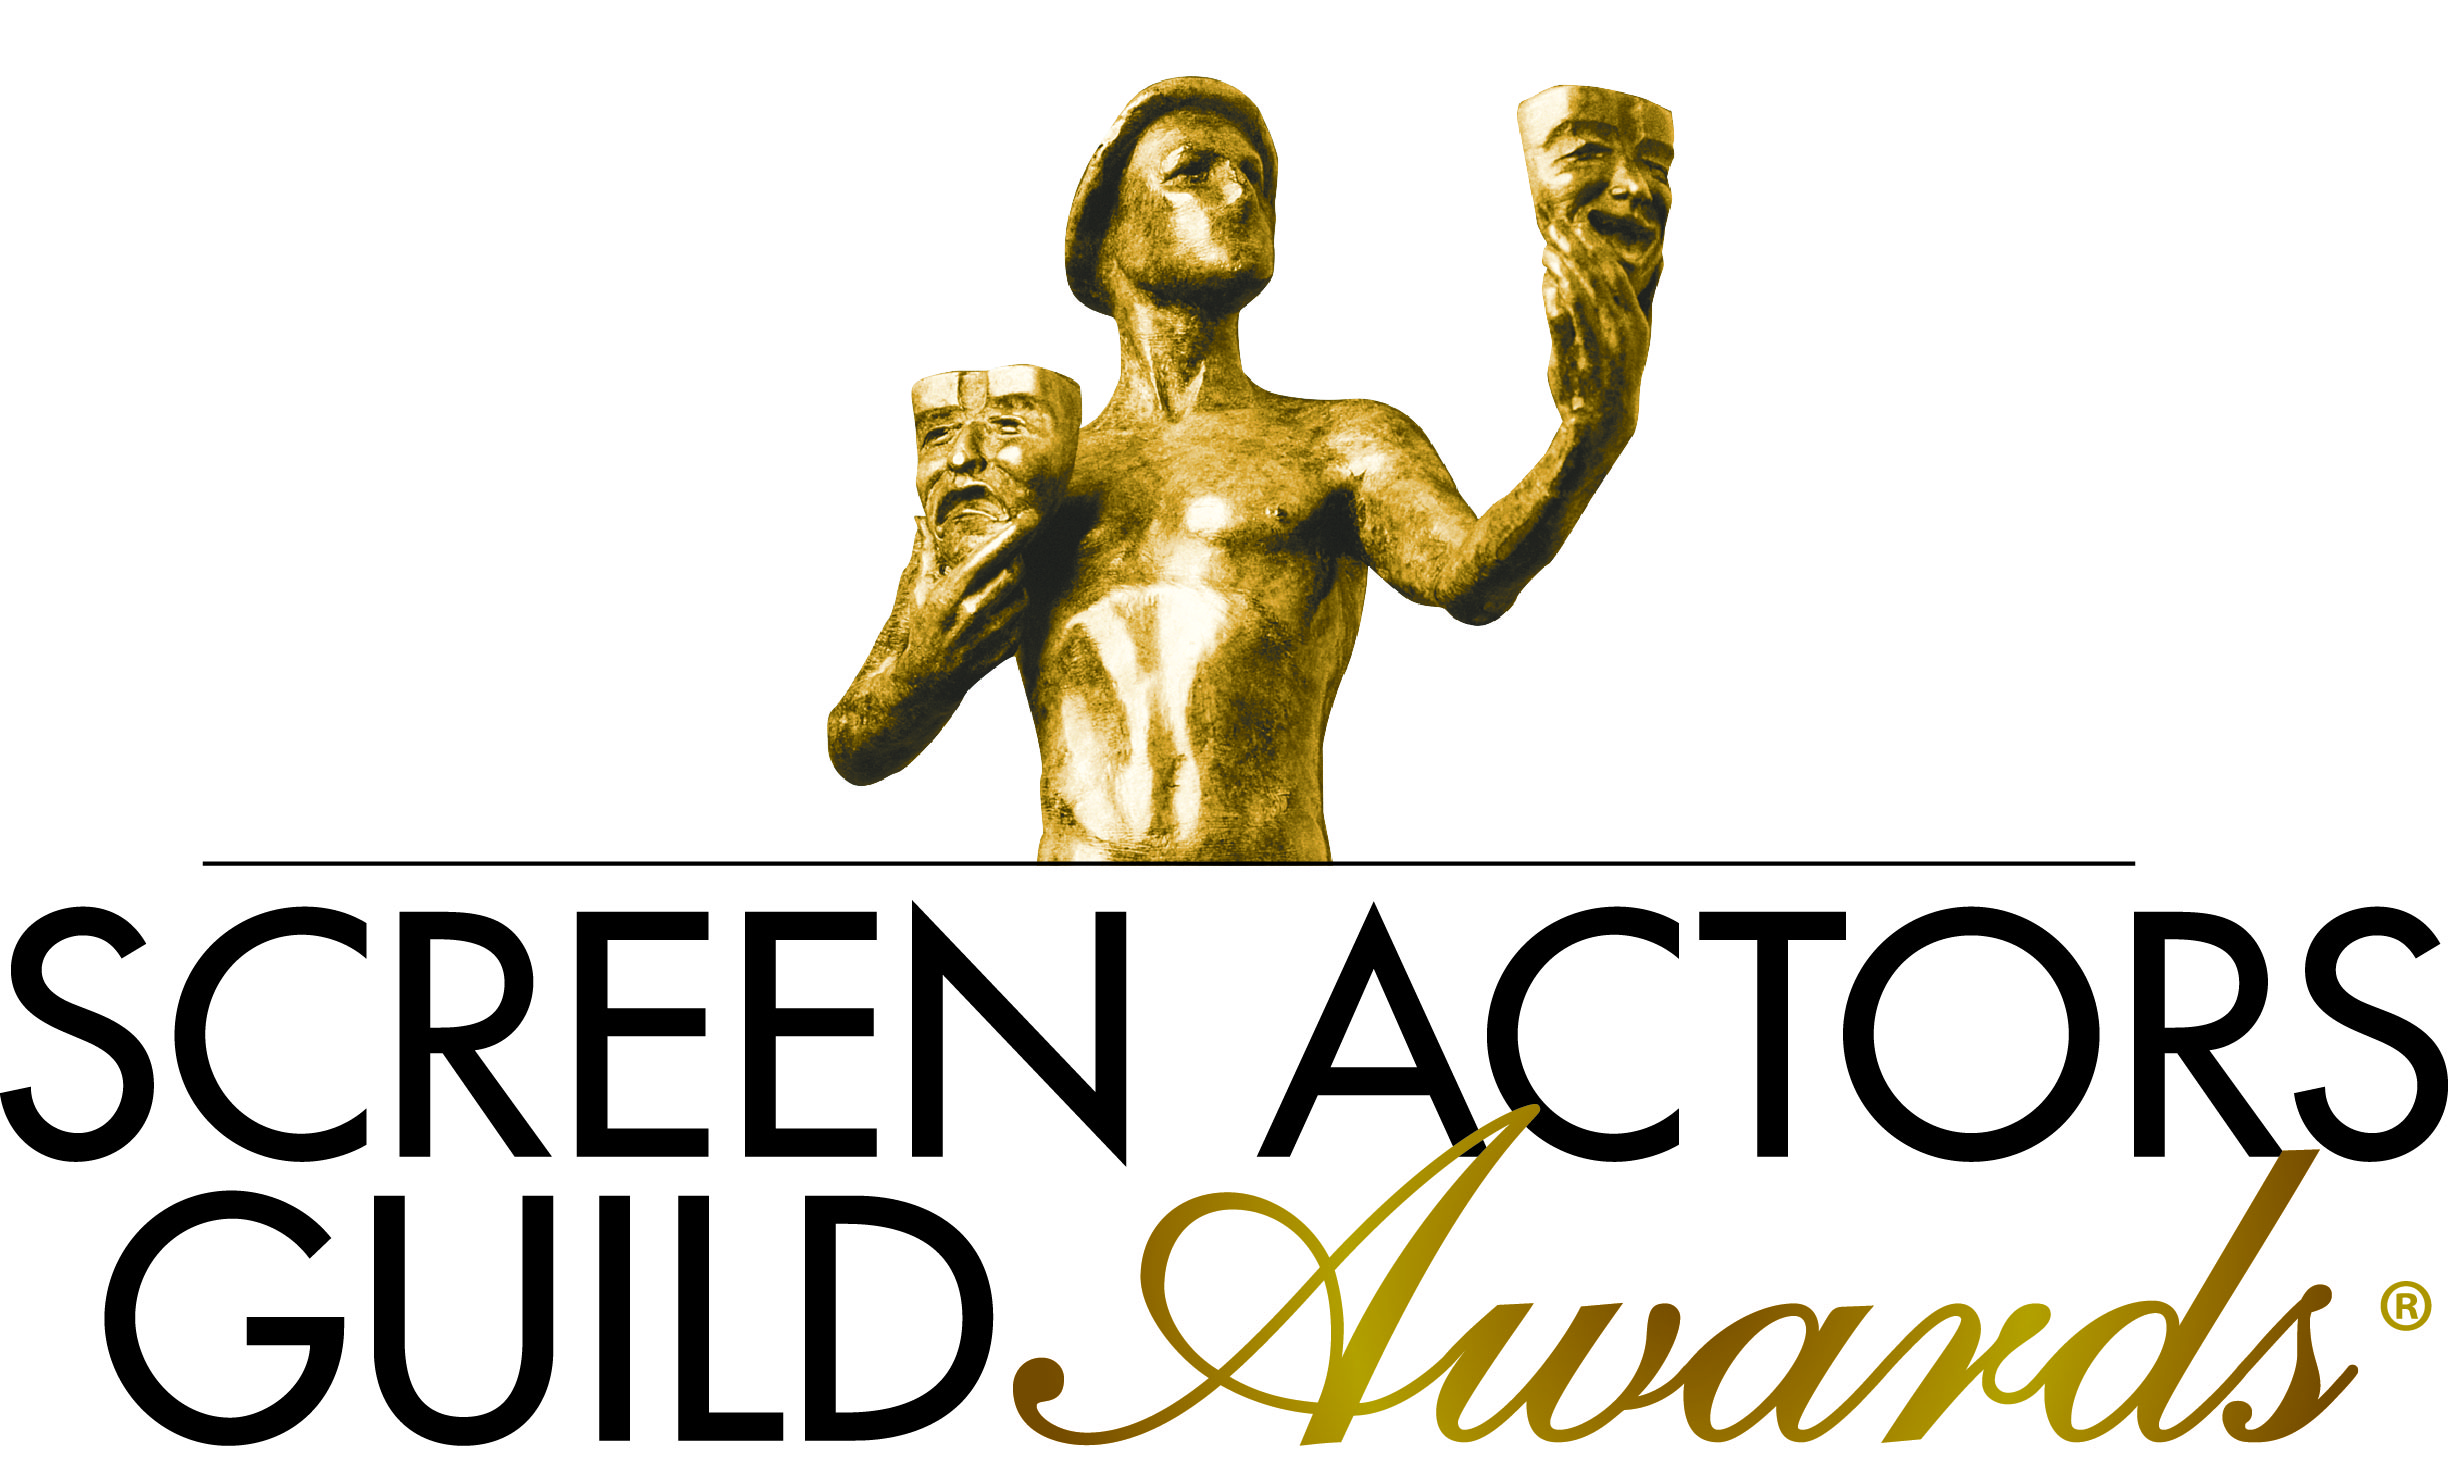 SAG Awards 2016 nominees